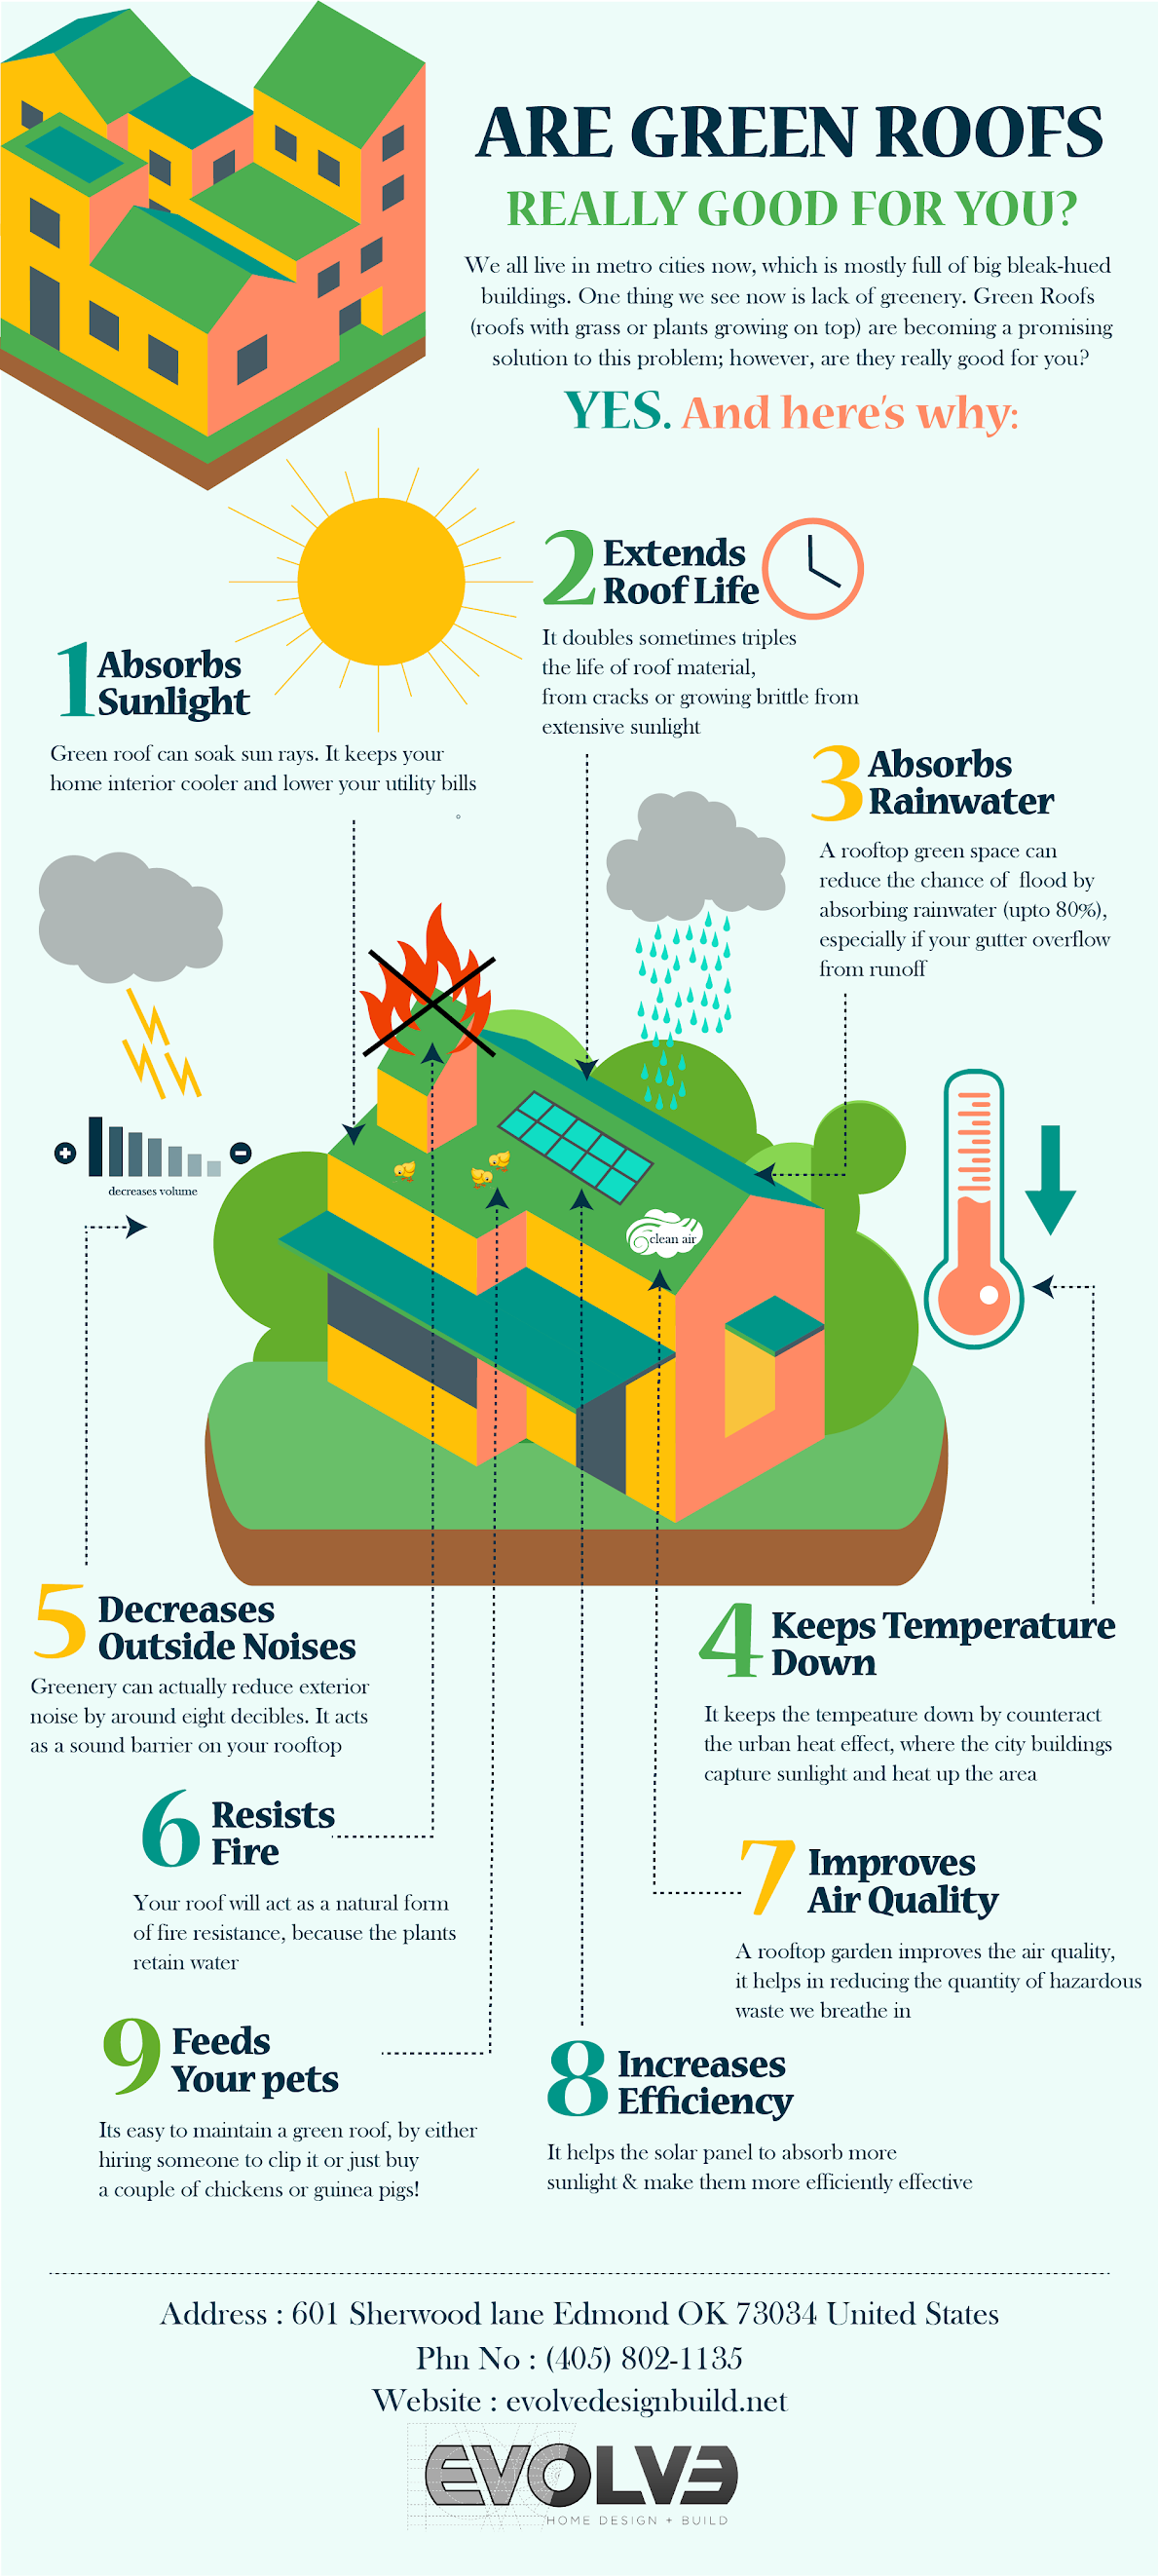 Benefits of green roof